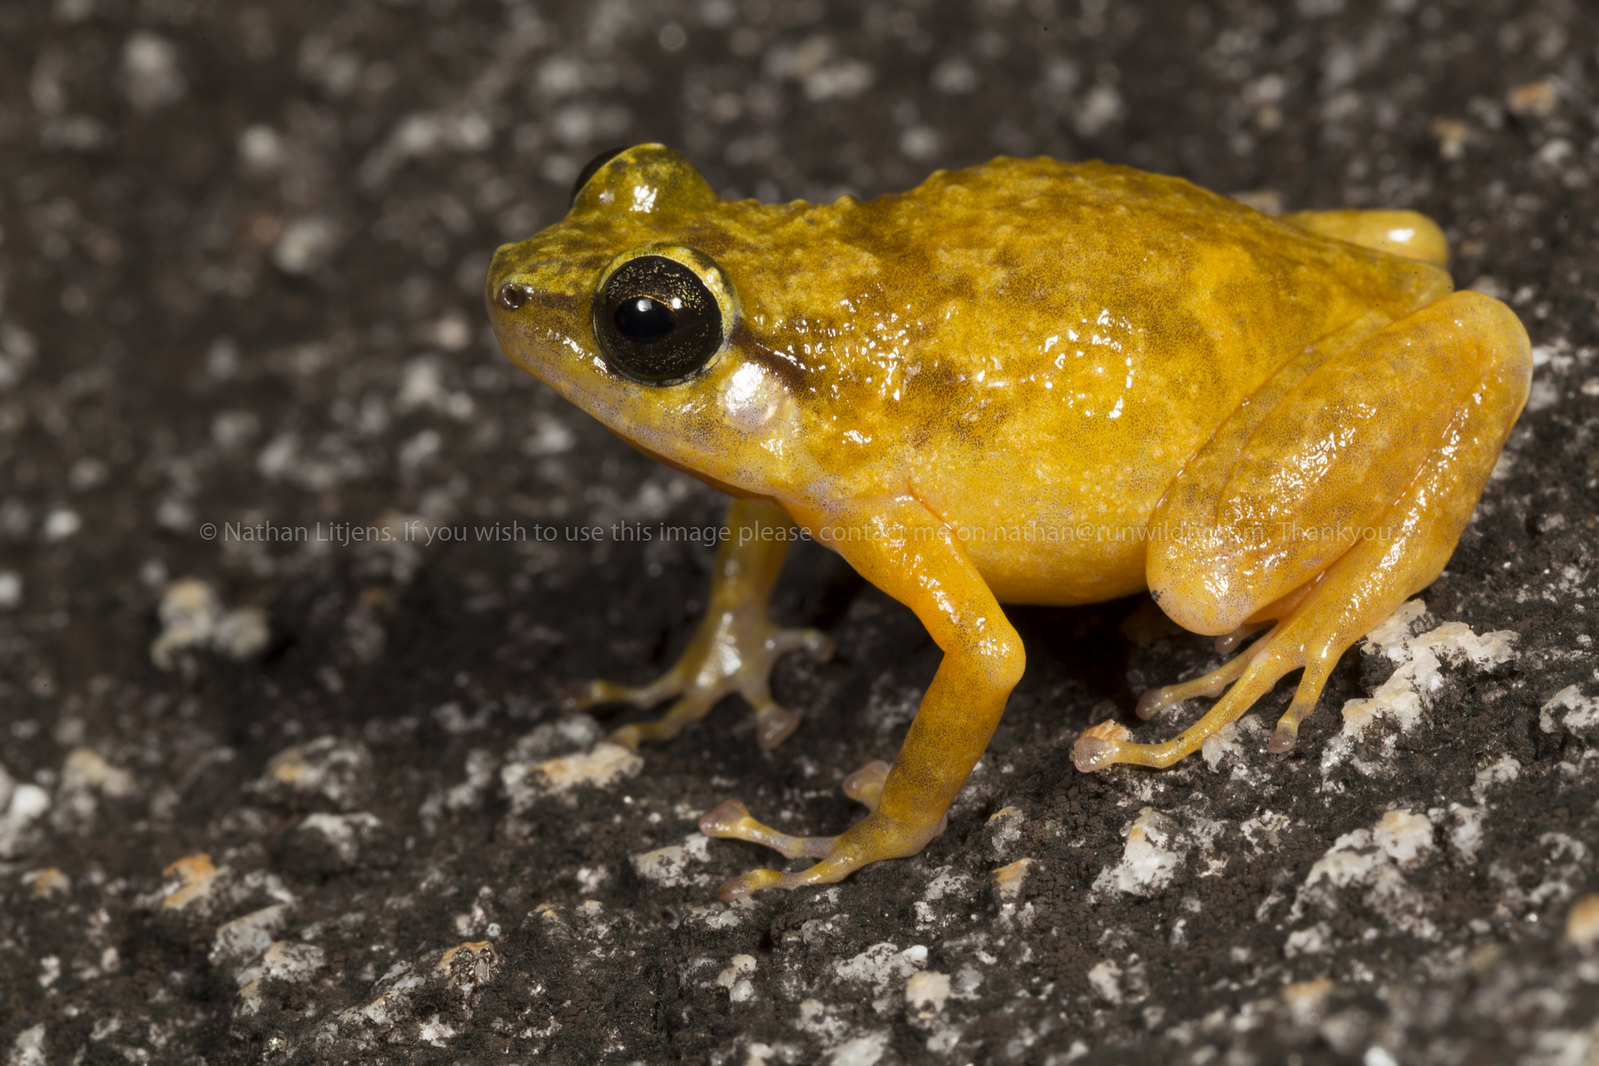 Black mountain nursery frog (Cophixalus saxitilis)